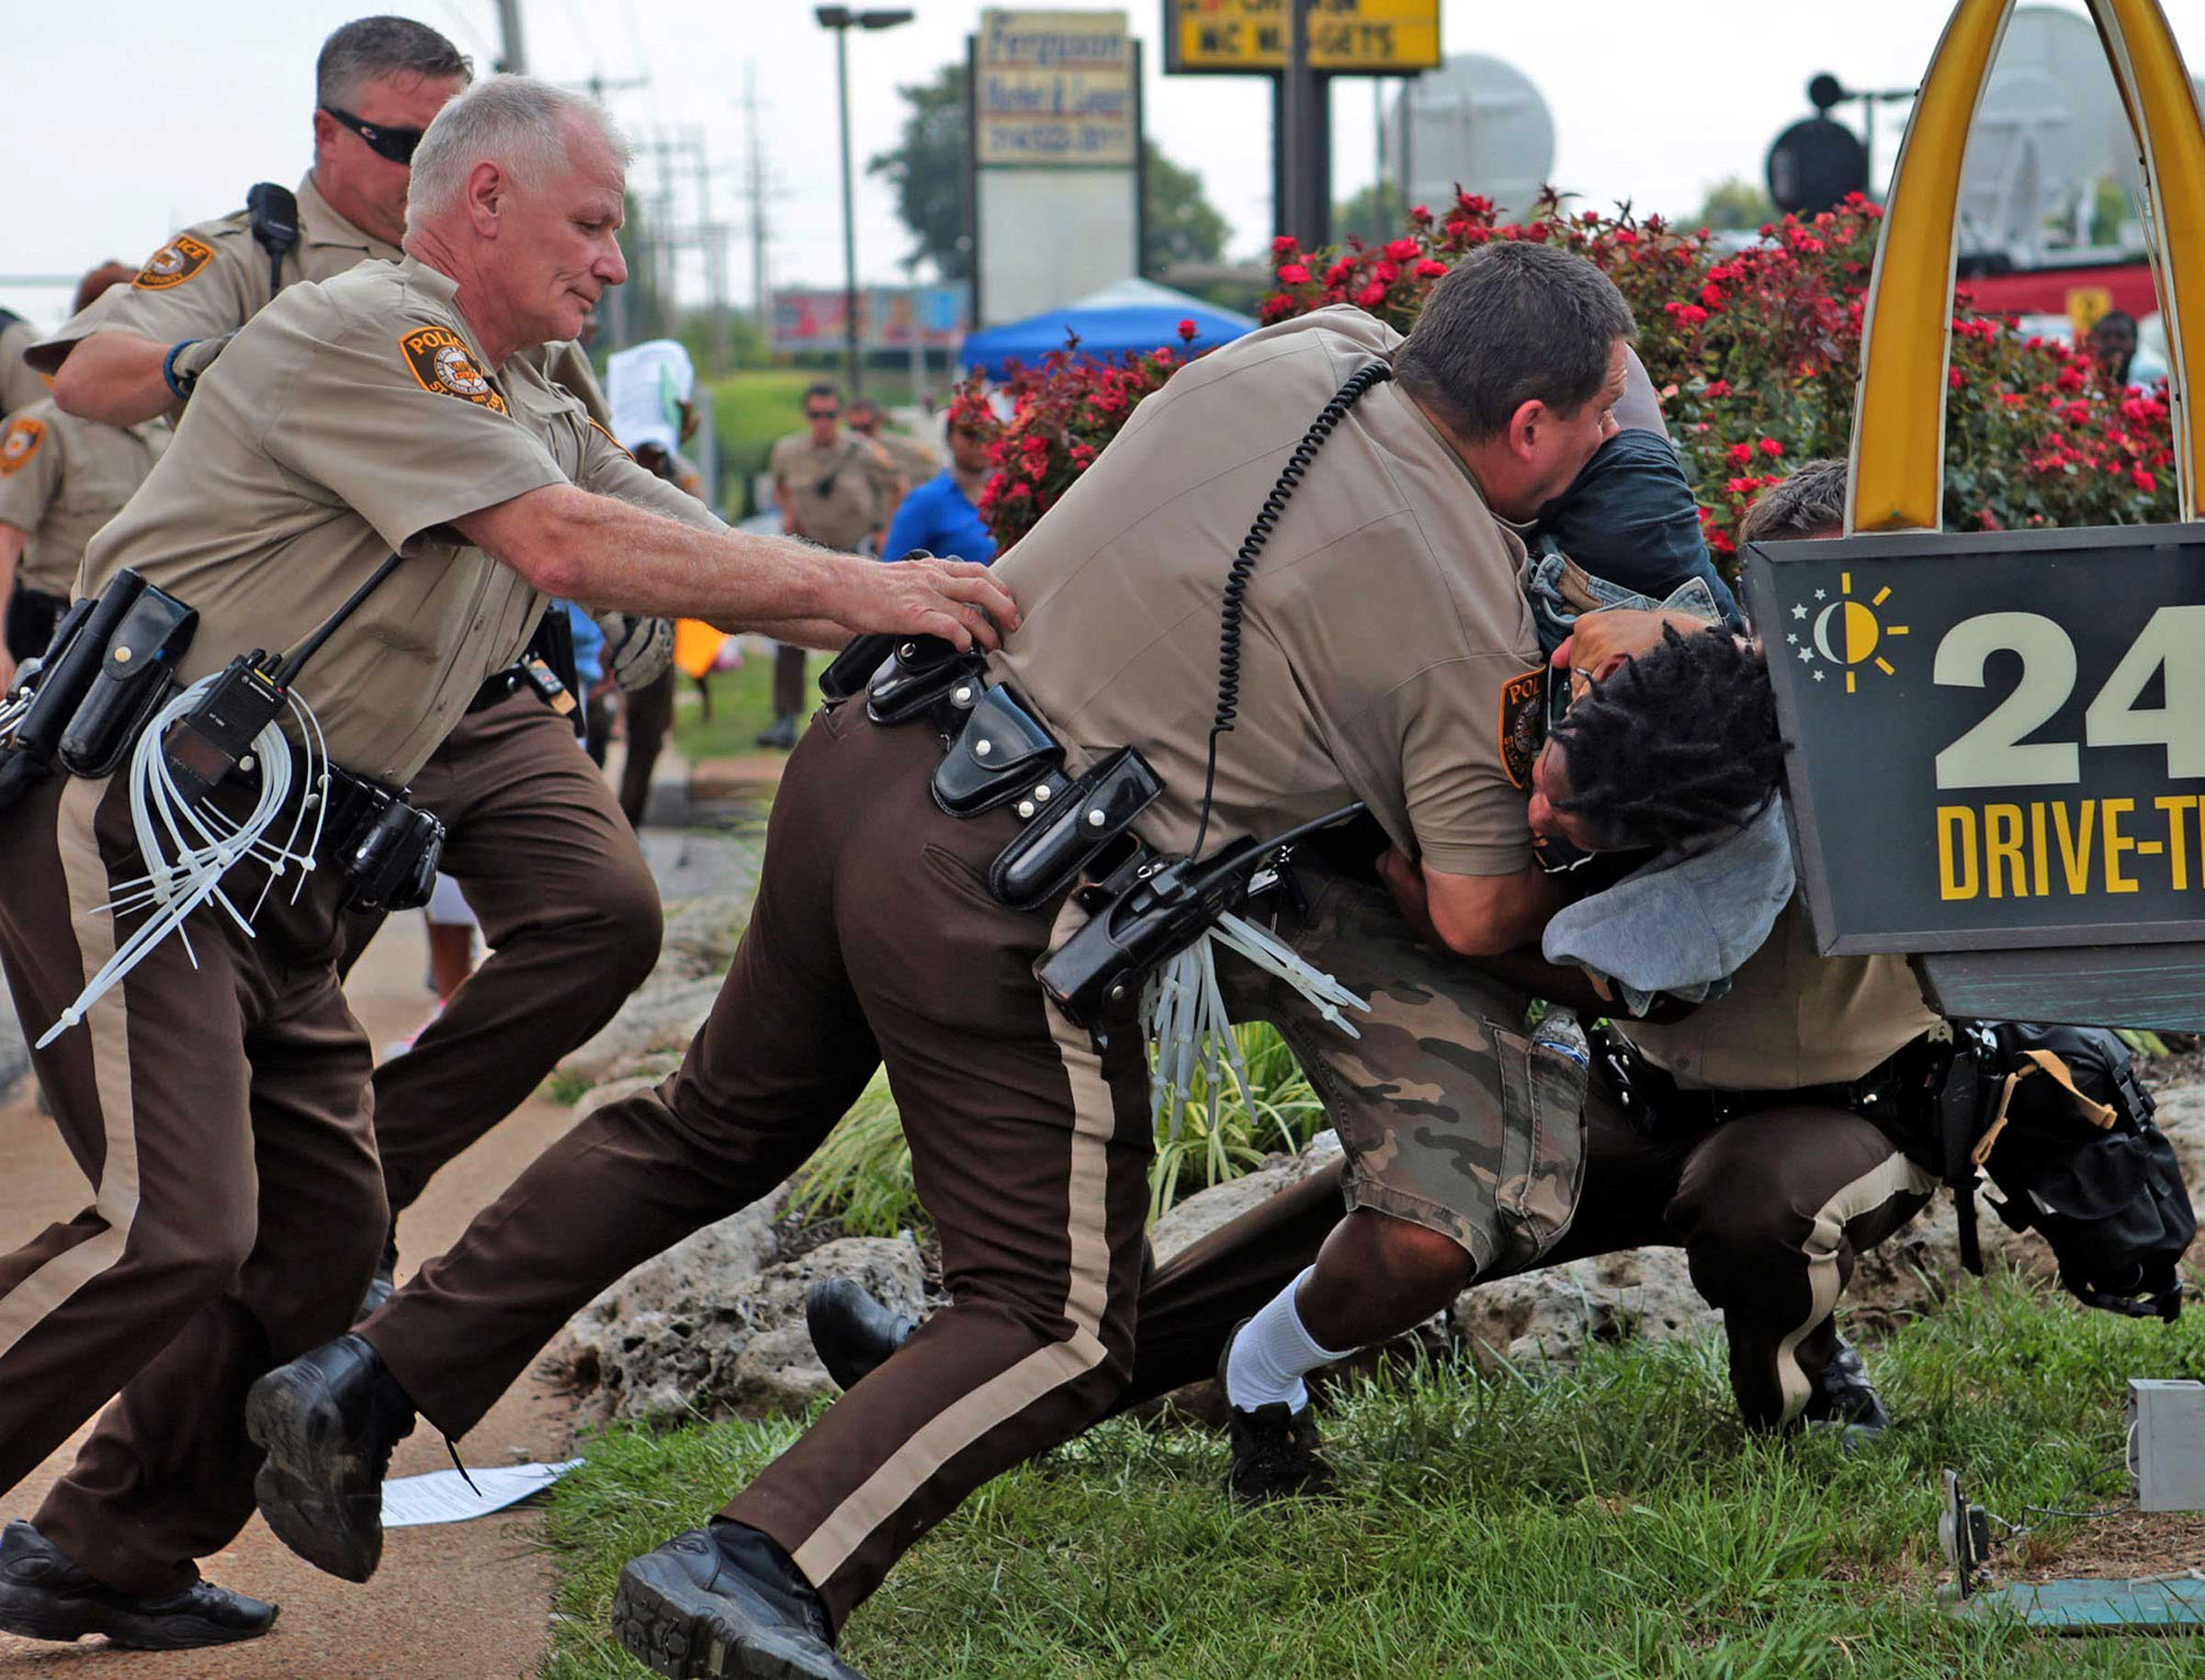 Aug. 18, 2014. Police tackle a man who was walking down the street in front of McDonald's on Monday. The man appeared to be walking past a group that had been assembled nearby and police were telling everyone to keep walking. Moments after he turned around and exchanged words with the police that he was just walking, police took him to the ground. Although there is no curfew in order tonight, police are strictly enforcing protestors to keep moving along the sidewalk or they are subject to arrest.